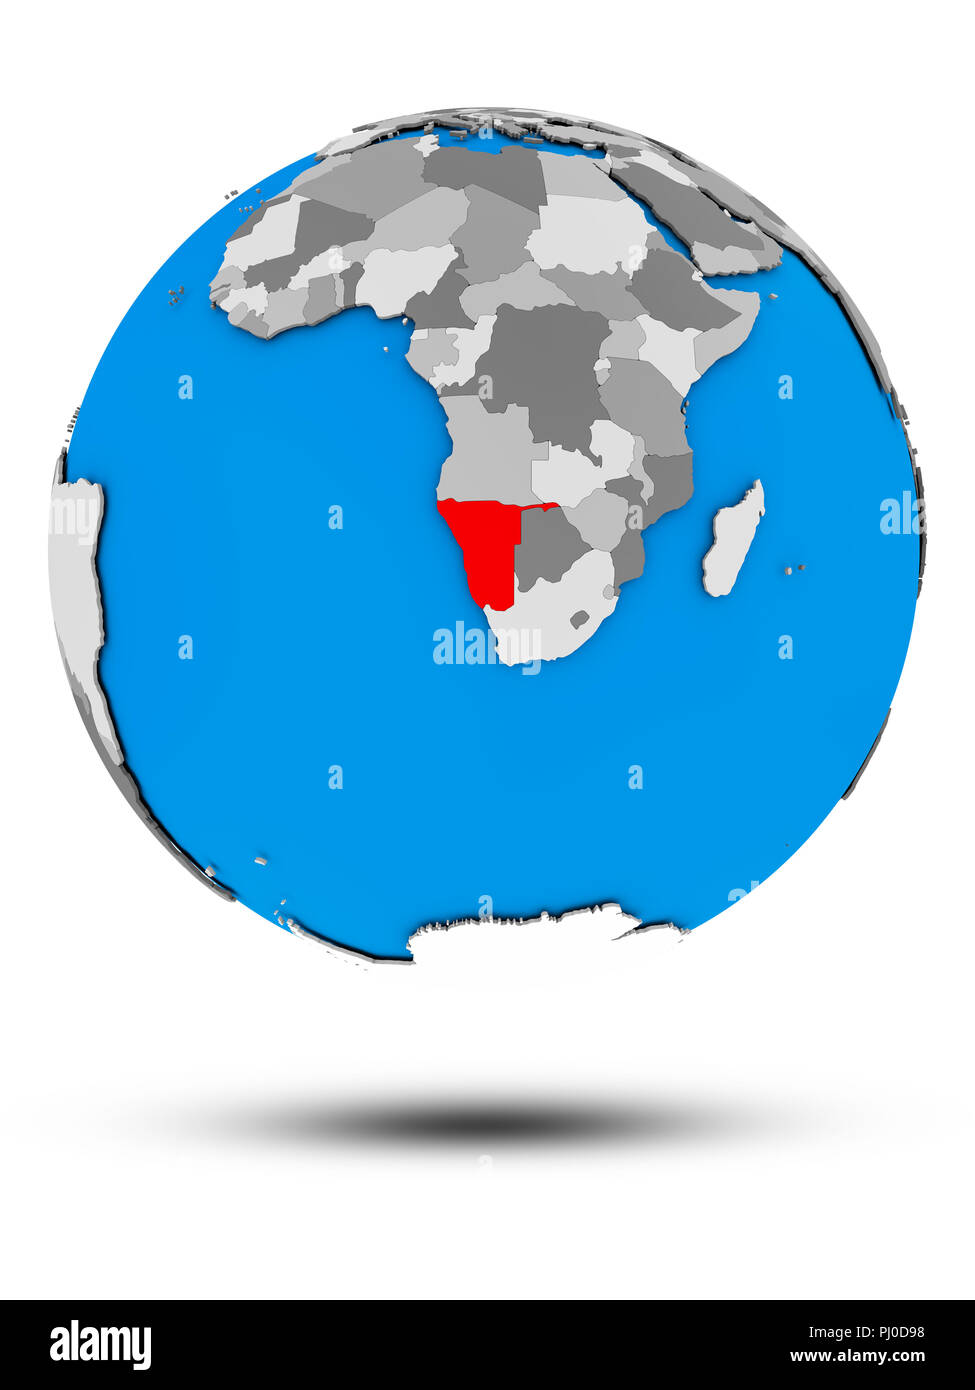 Namibia on political globe with shadow isolated on white background. 3D illustration. - Stock Image